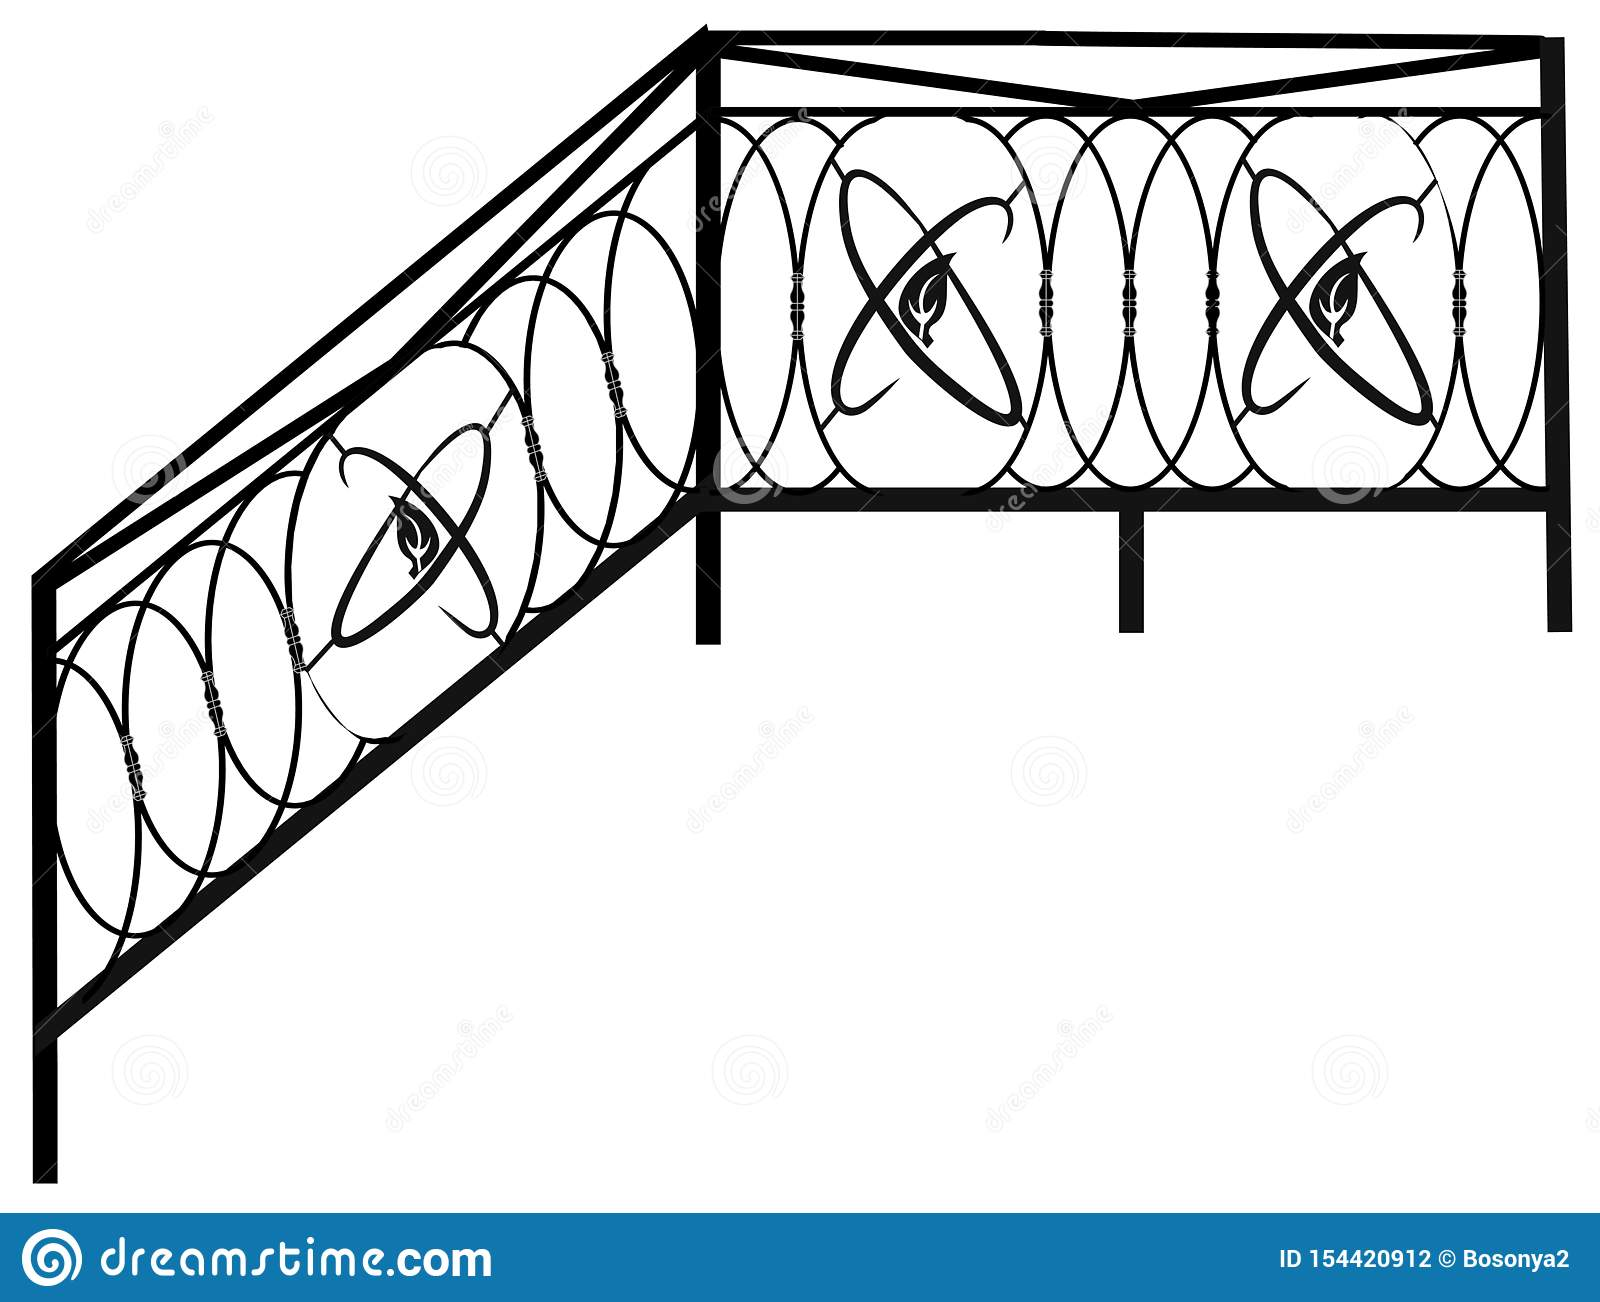 Fences, Railings And Grates. Forged Items And Products For ...